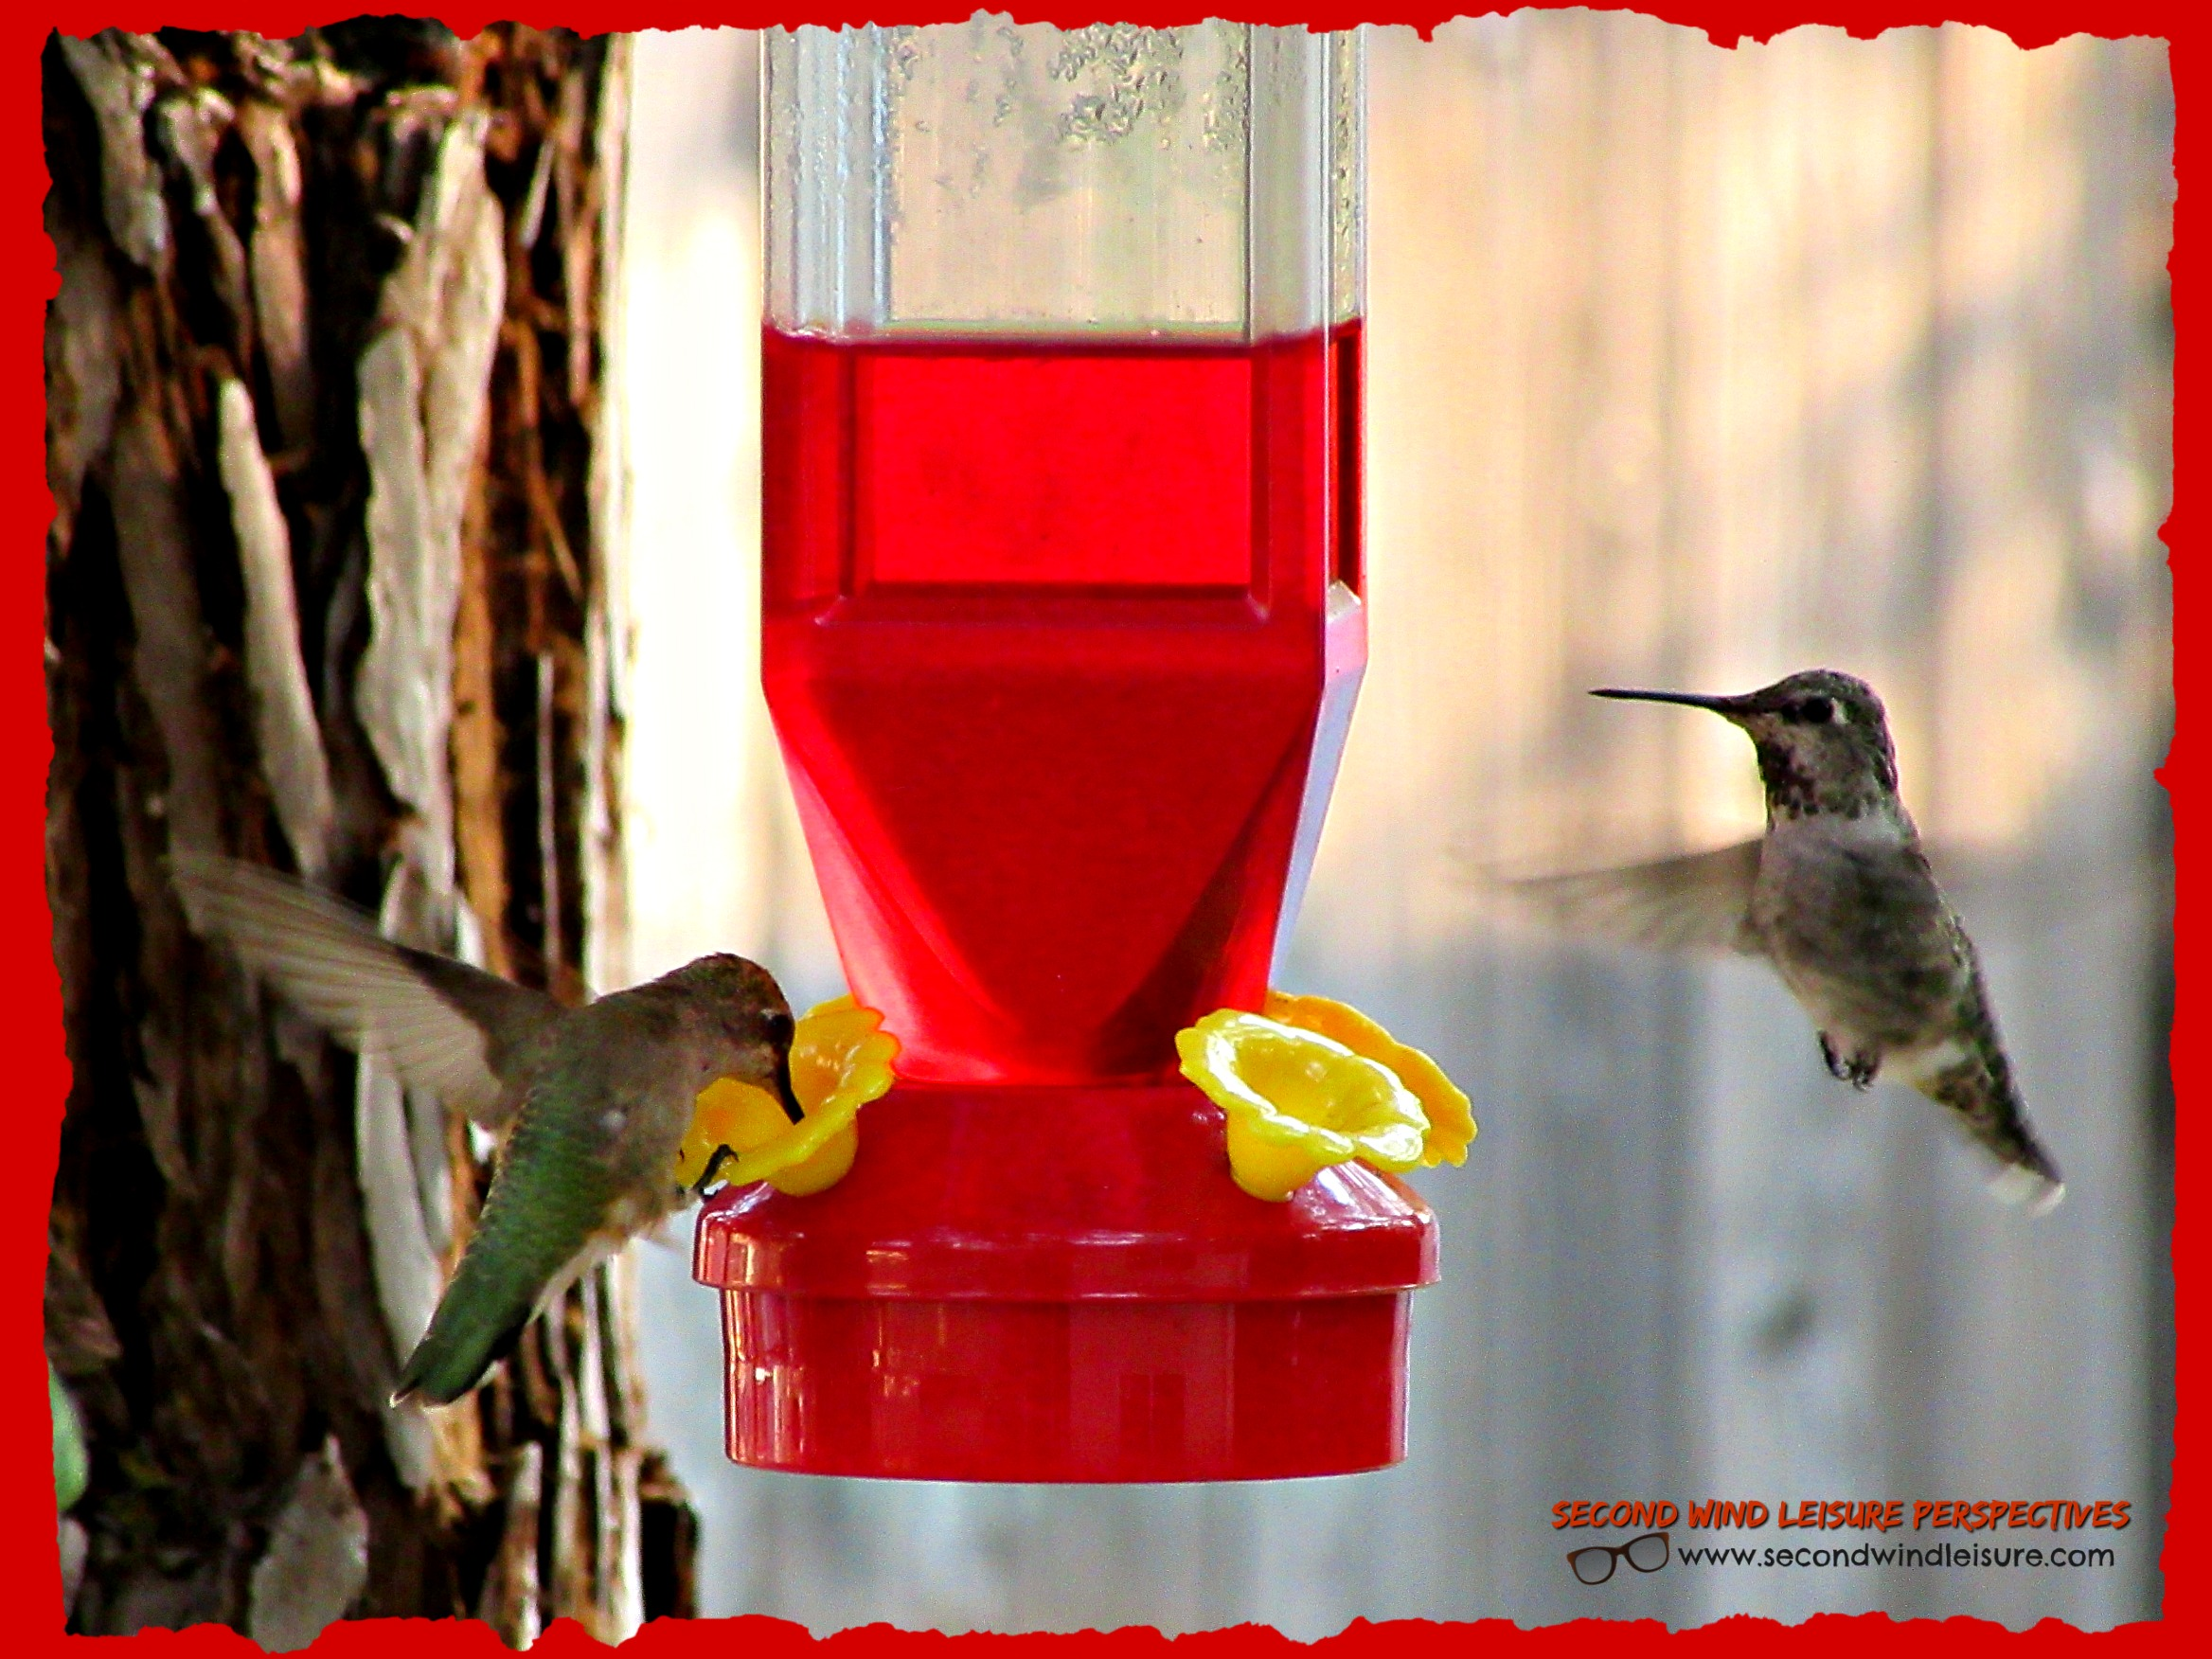 Hummingbirds' quest for food